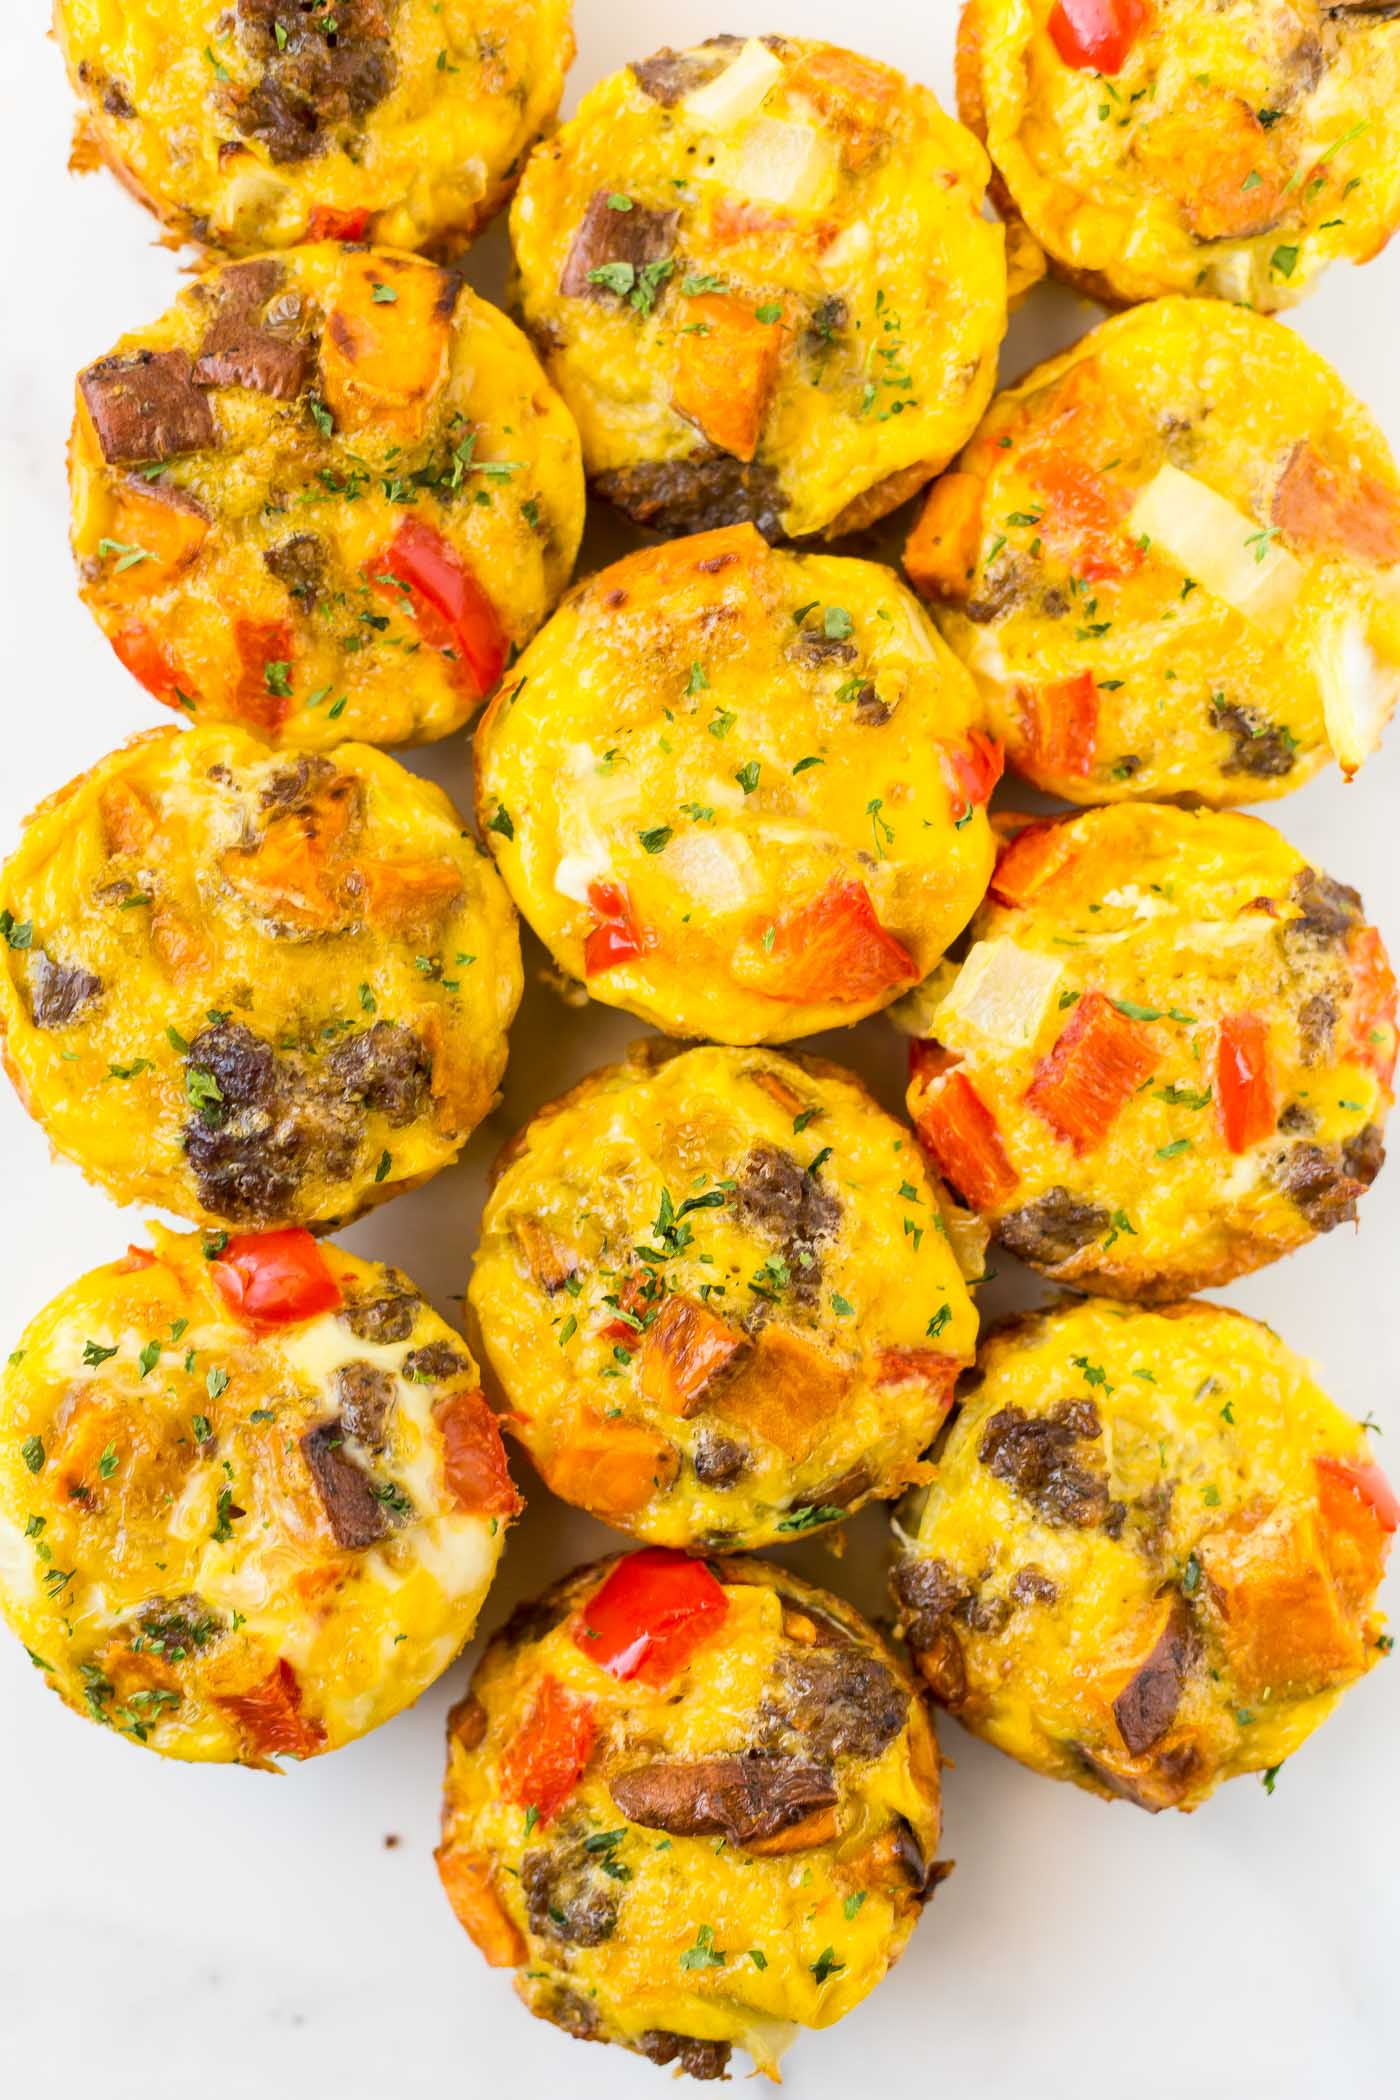 Baked egg breakfast muffins in a row on white background